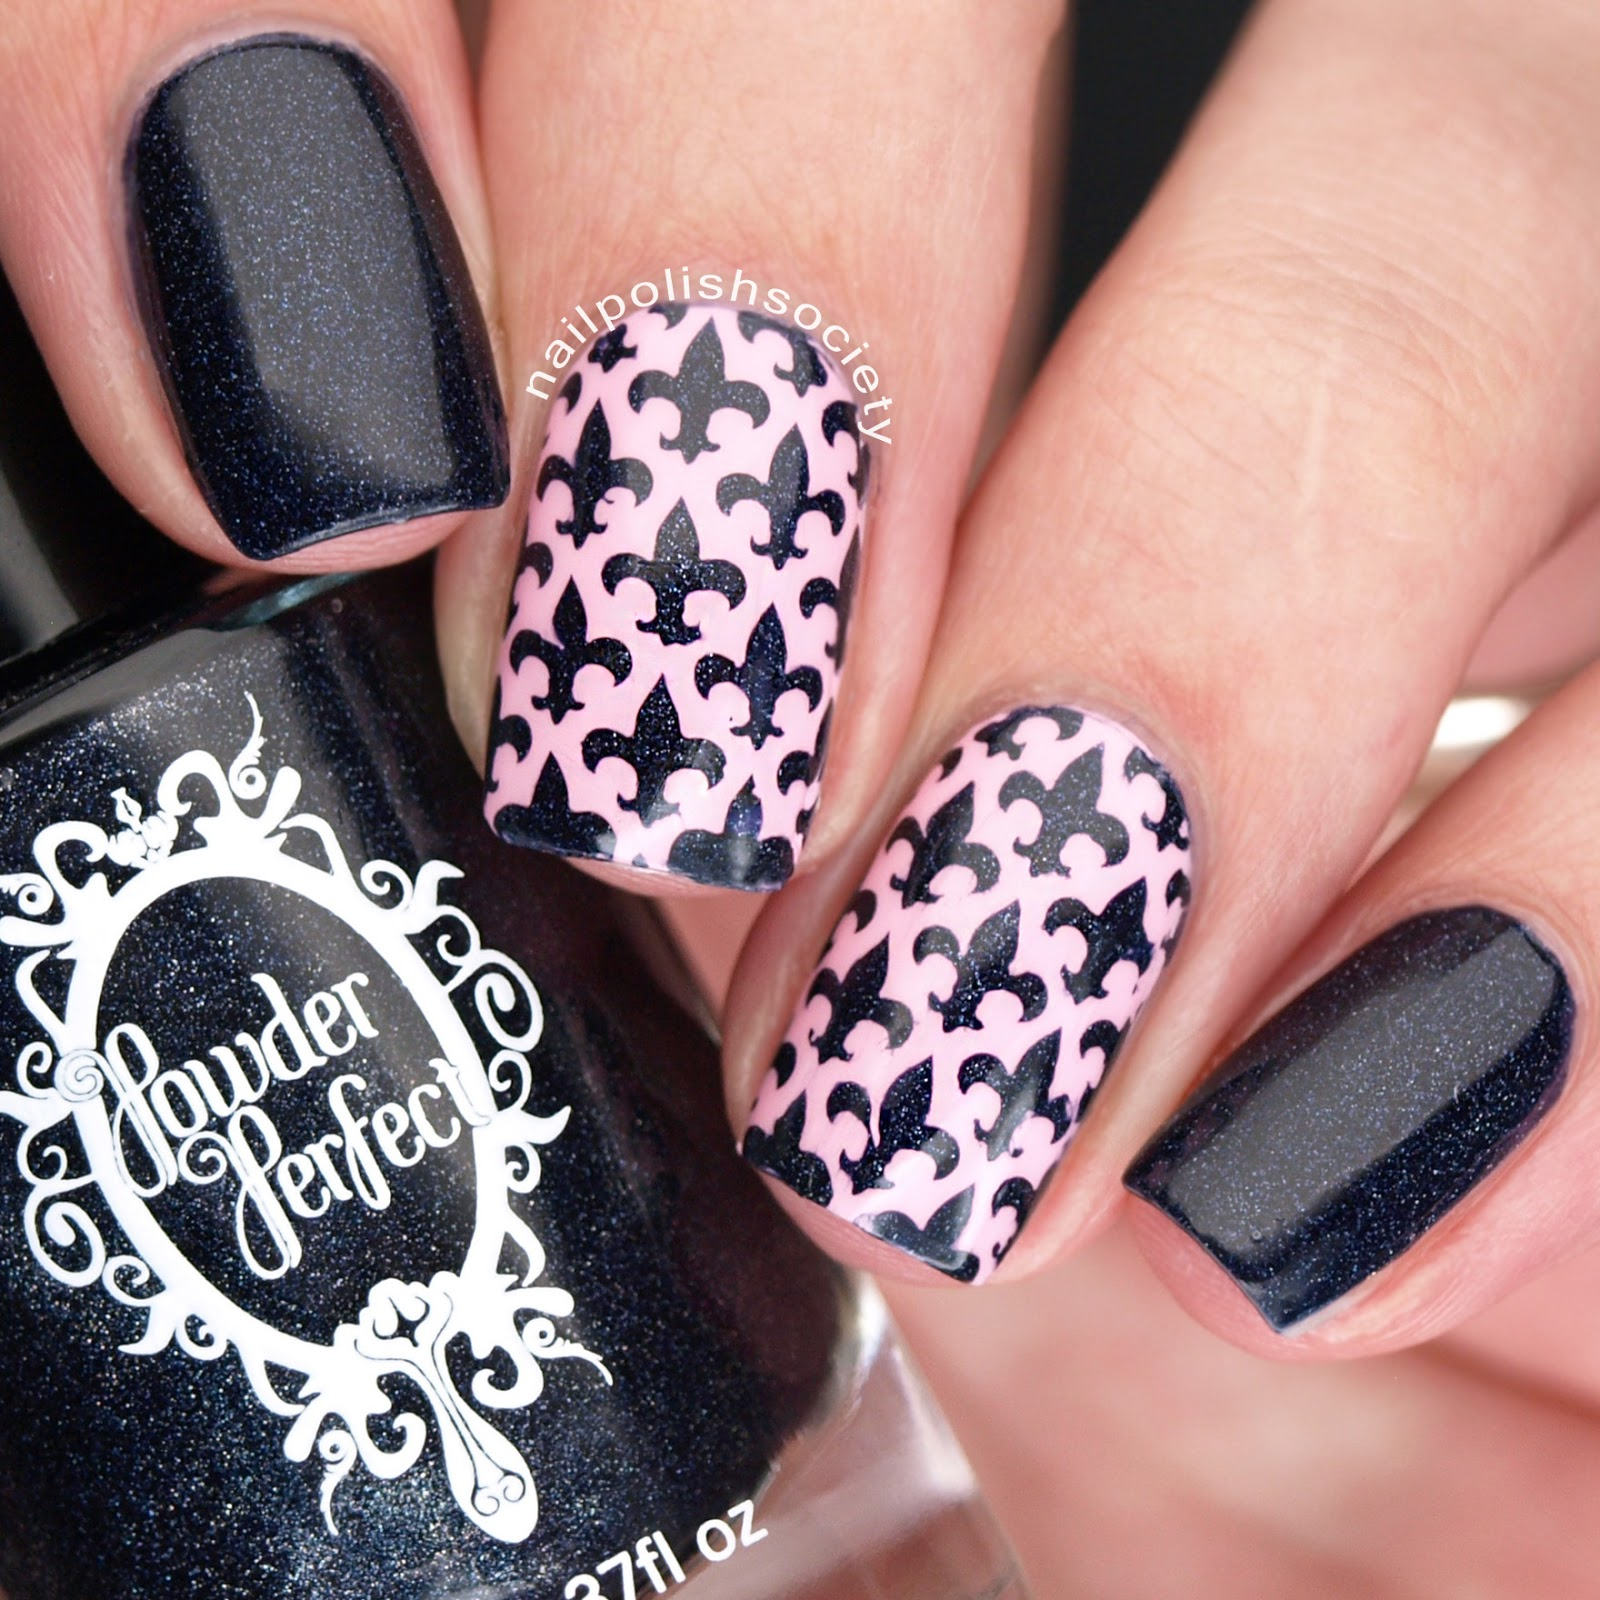 nail polish society what 39 s up nails vinyl stencils and stickers review. Black Bedroom Furniture Sets. Home Design Ideas